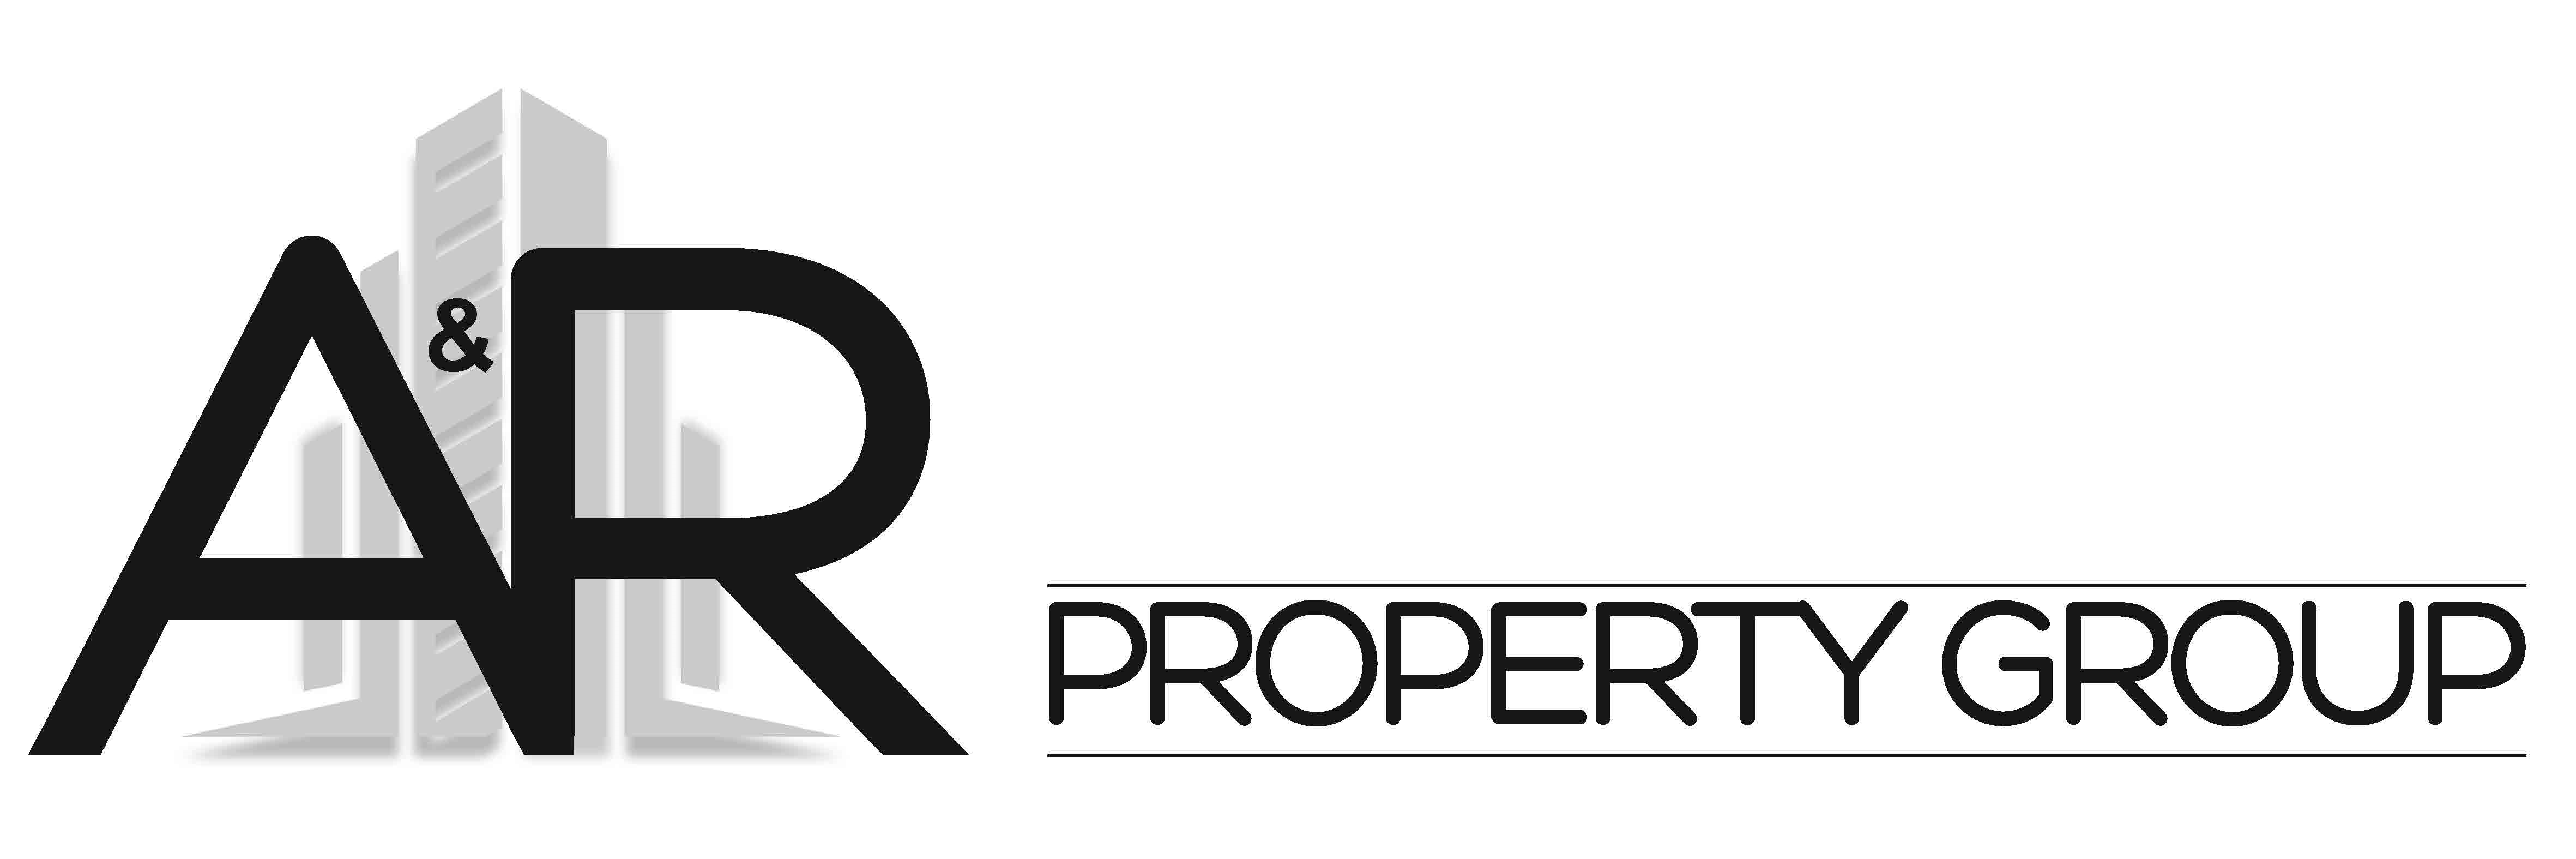 A&R Property Group, Shellharbour, 2529